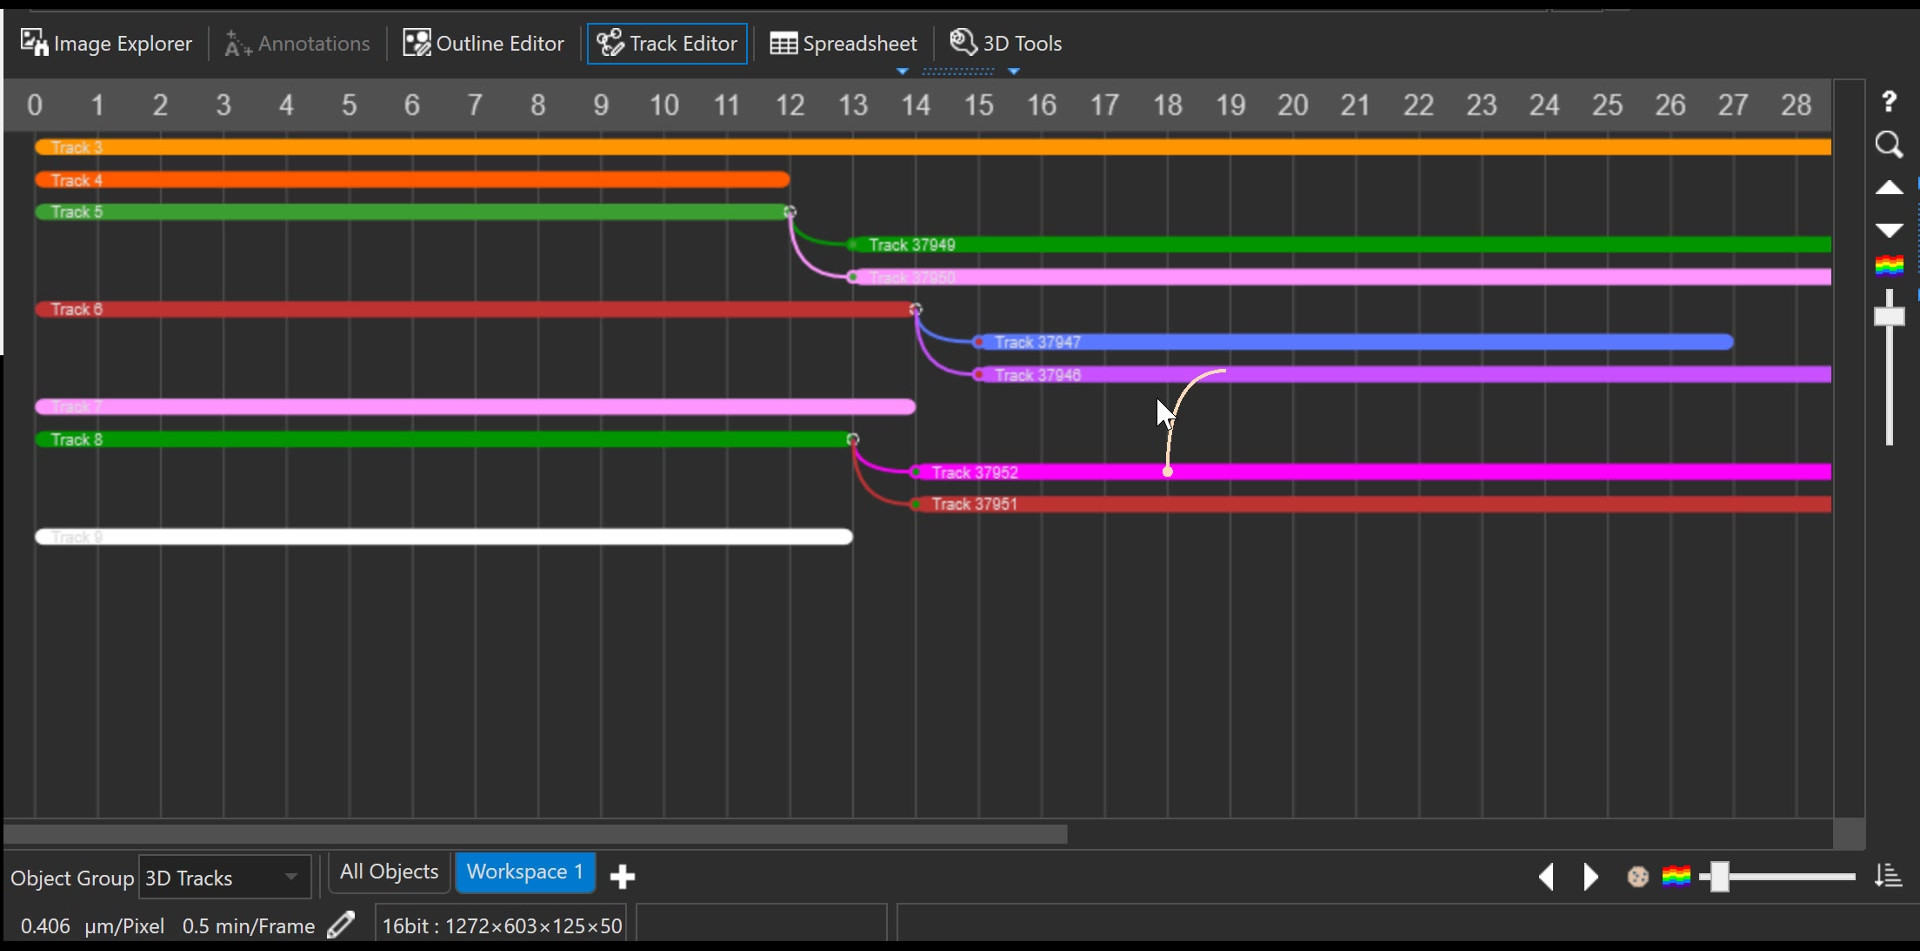 Track Editing in Aivia 7